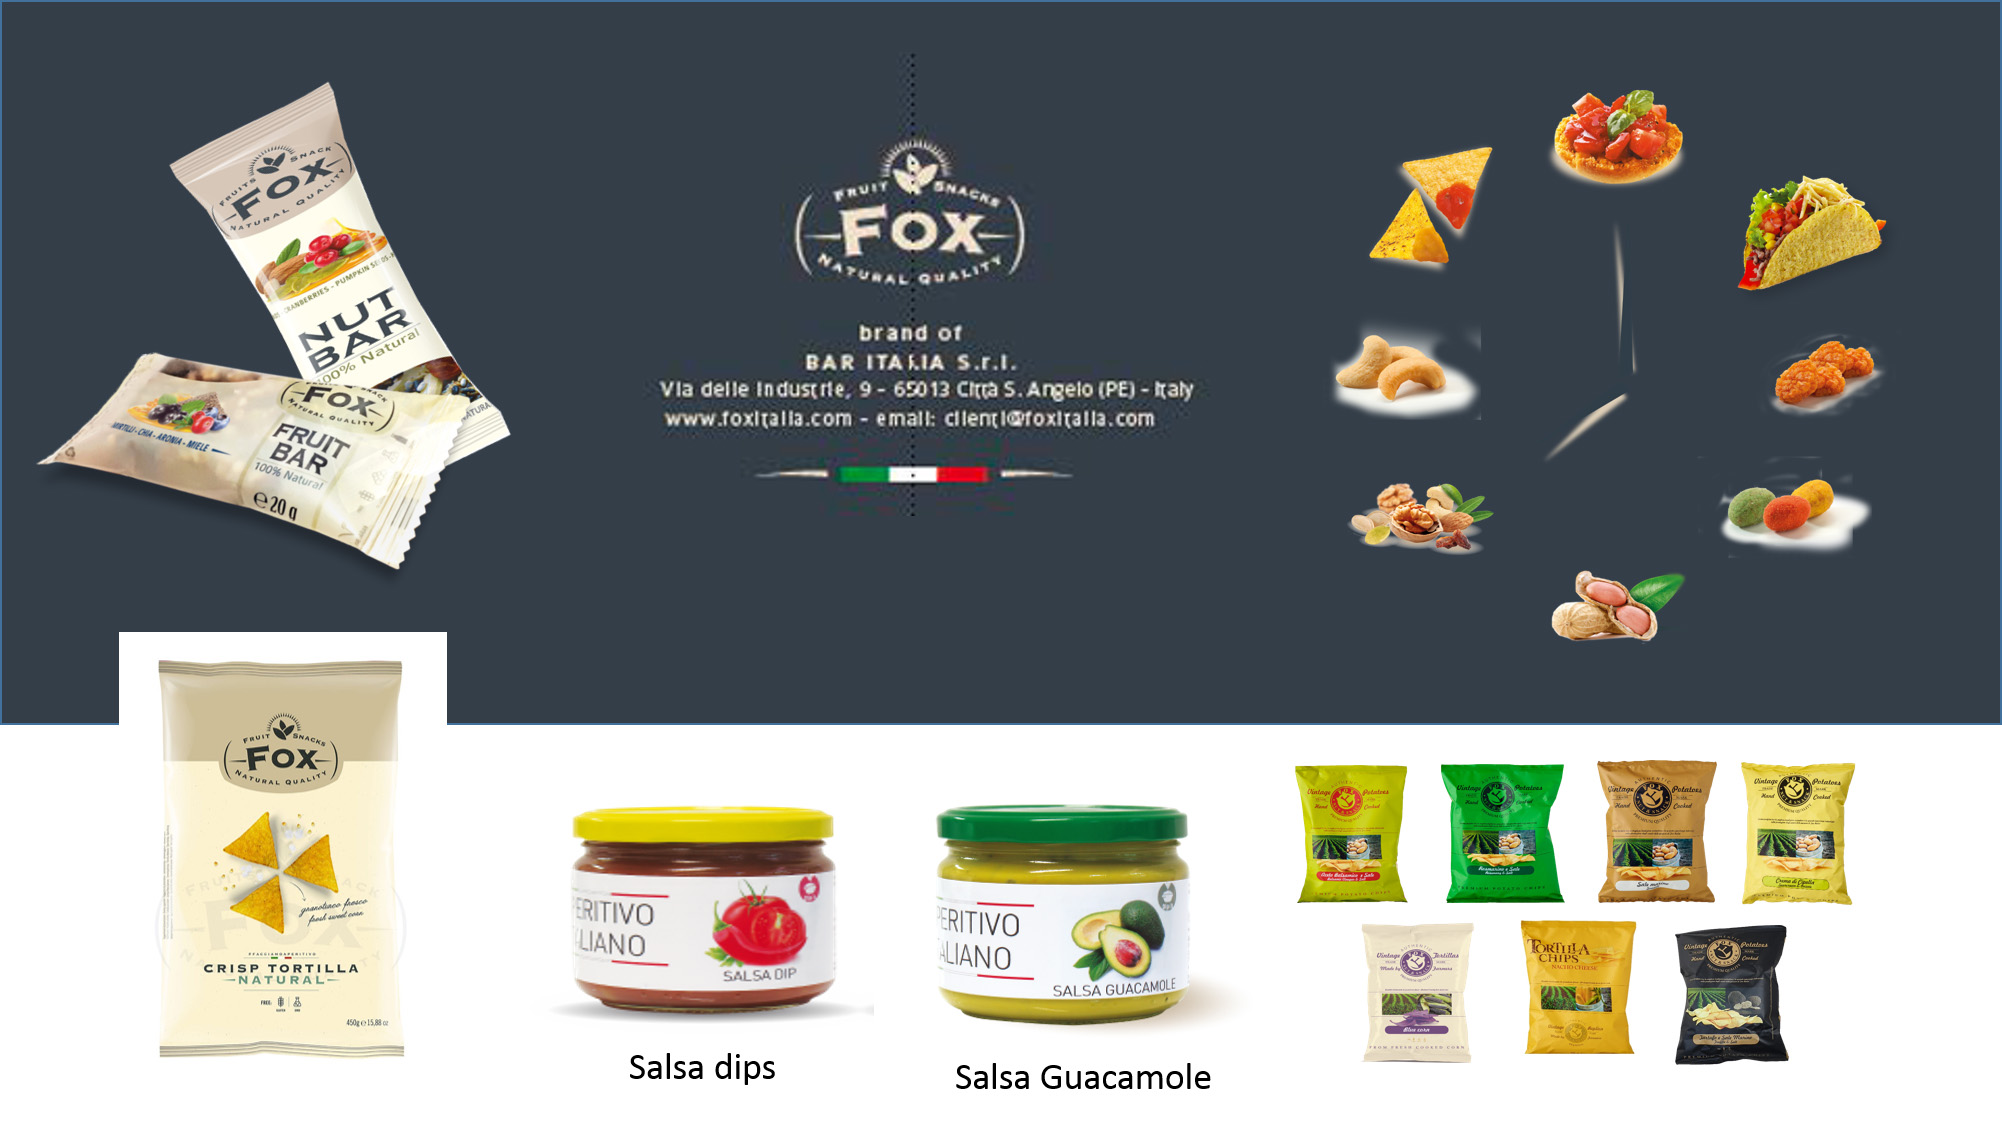 Fox Italia - Premium Snack and Gourmet Food